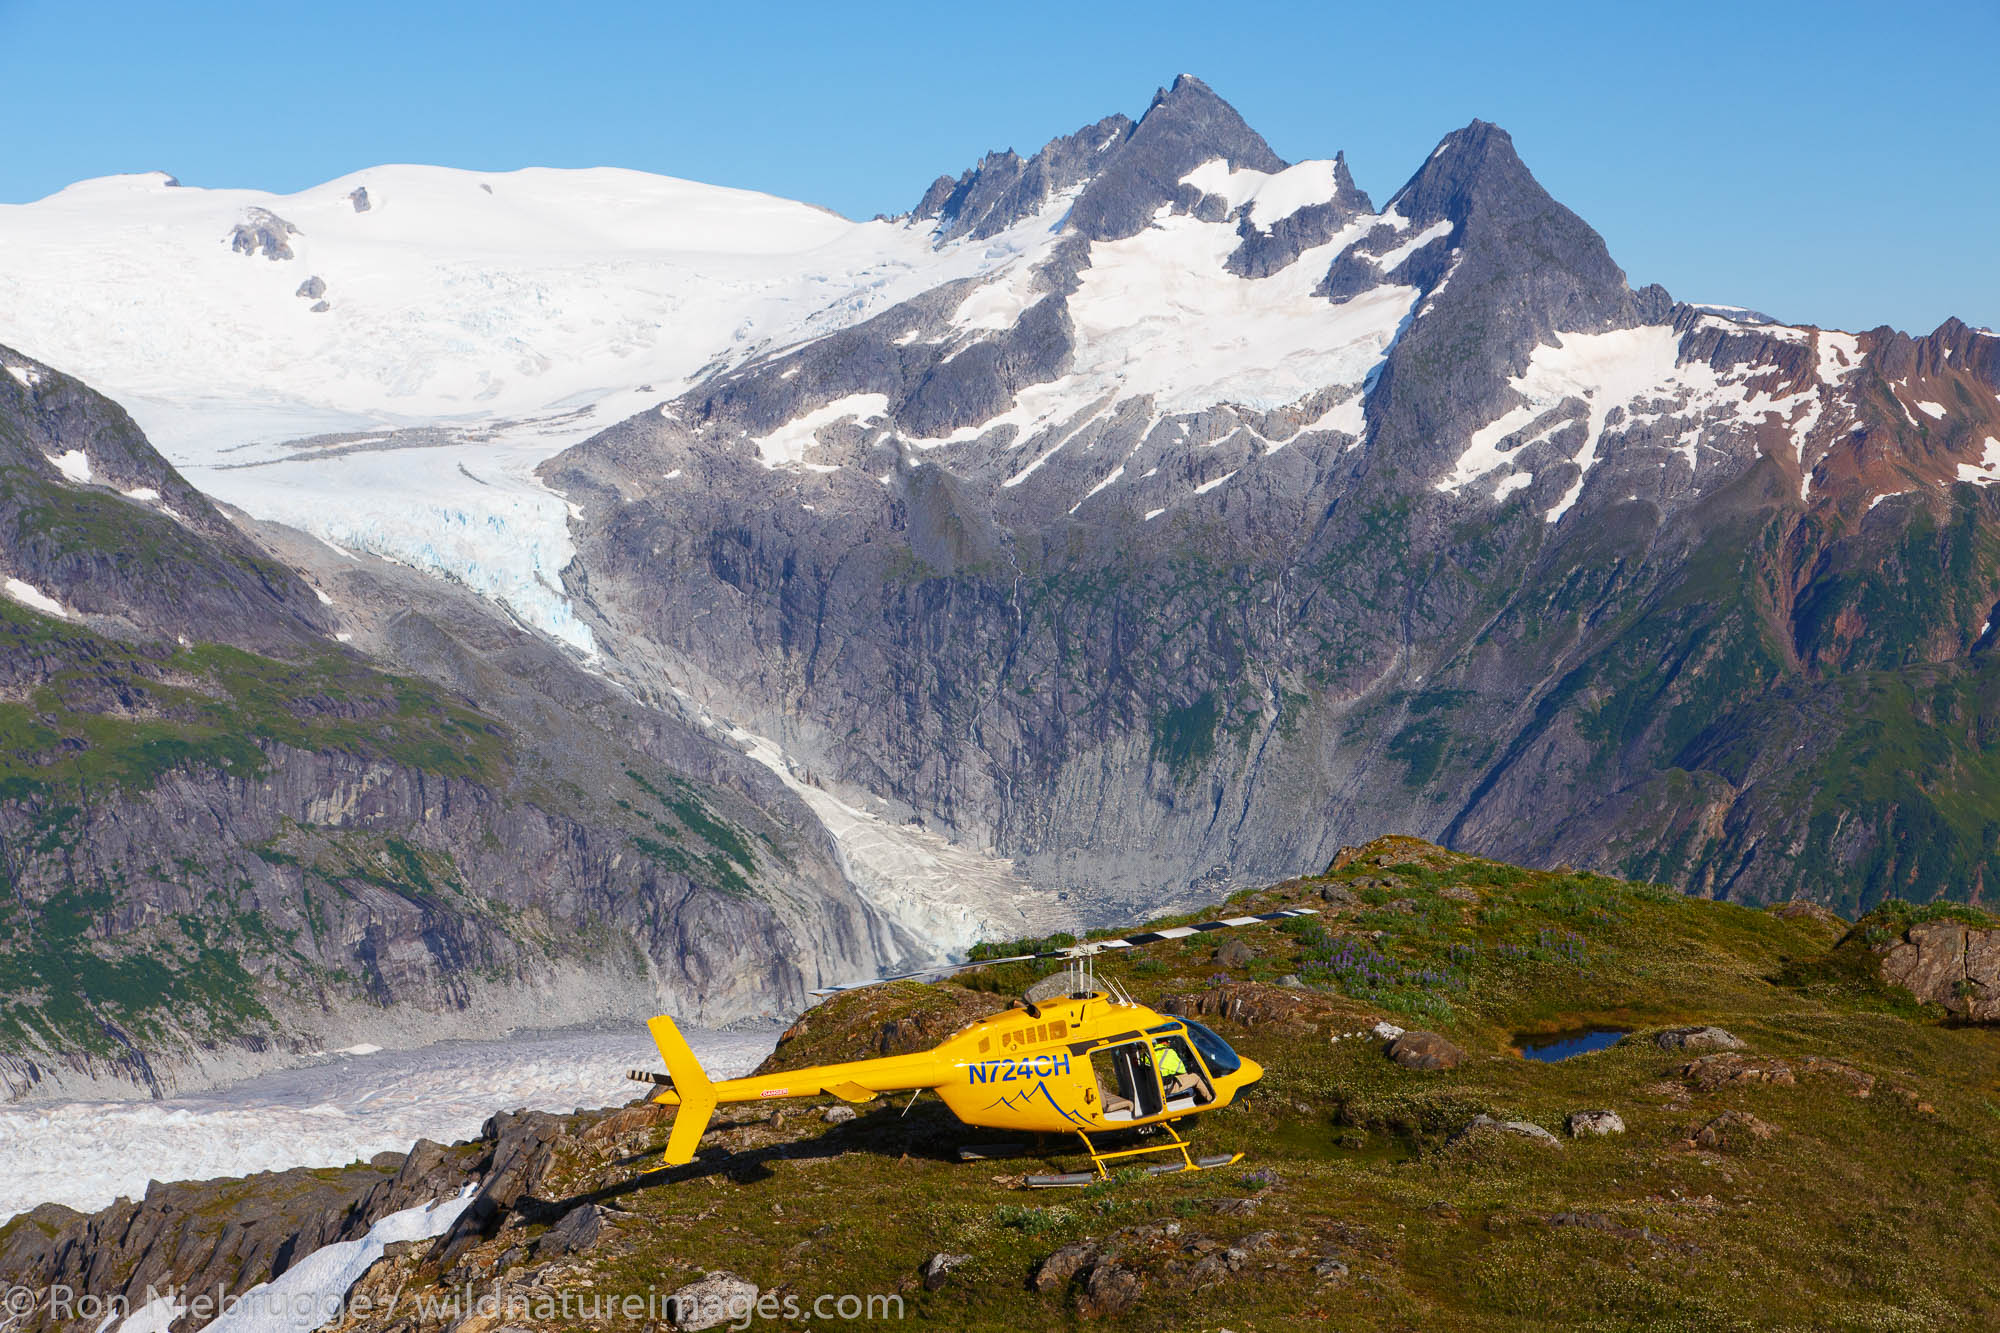 Helicopter on Mount Stroller White above the Mendenhall Glacier, Tongass National Forest, Alaska.